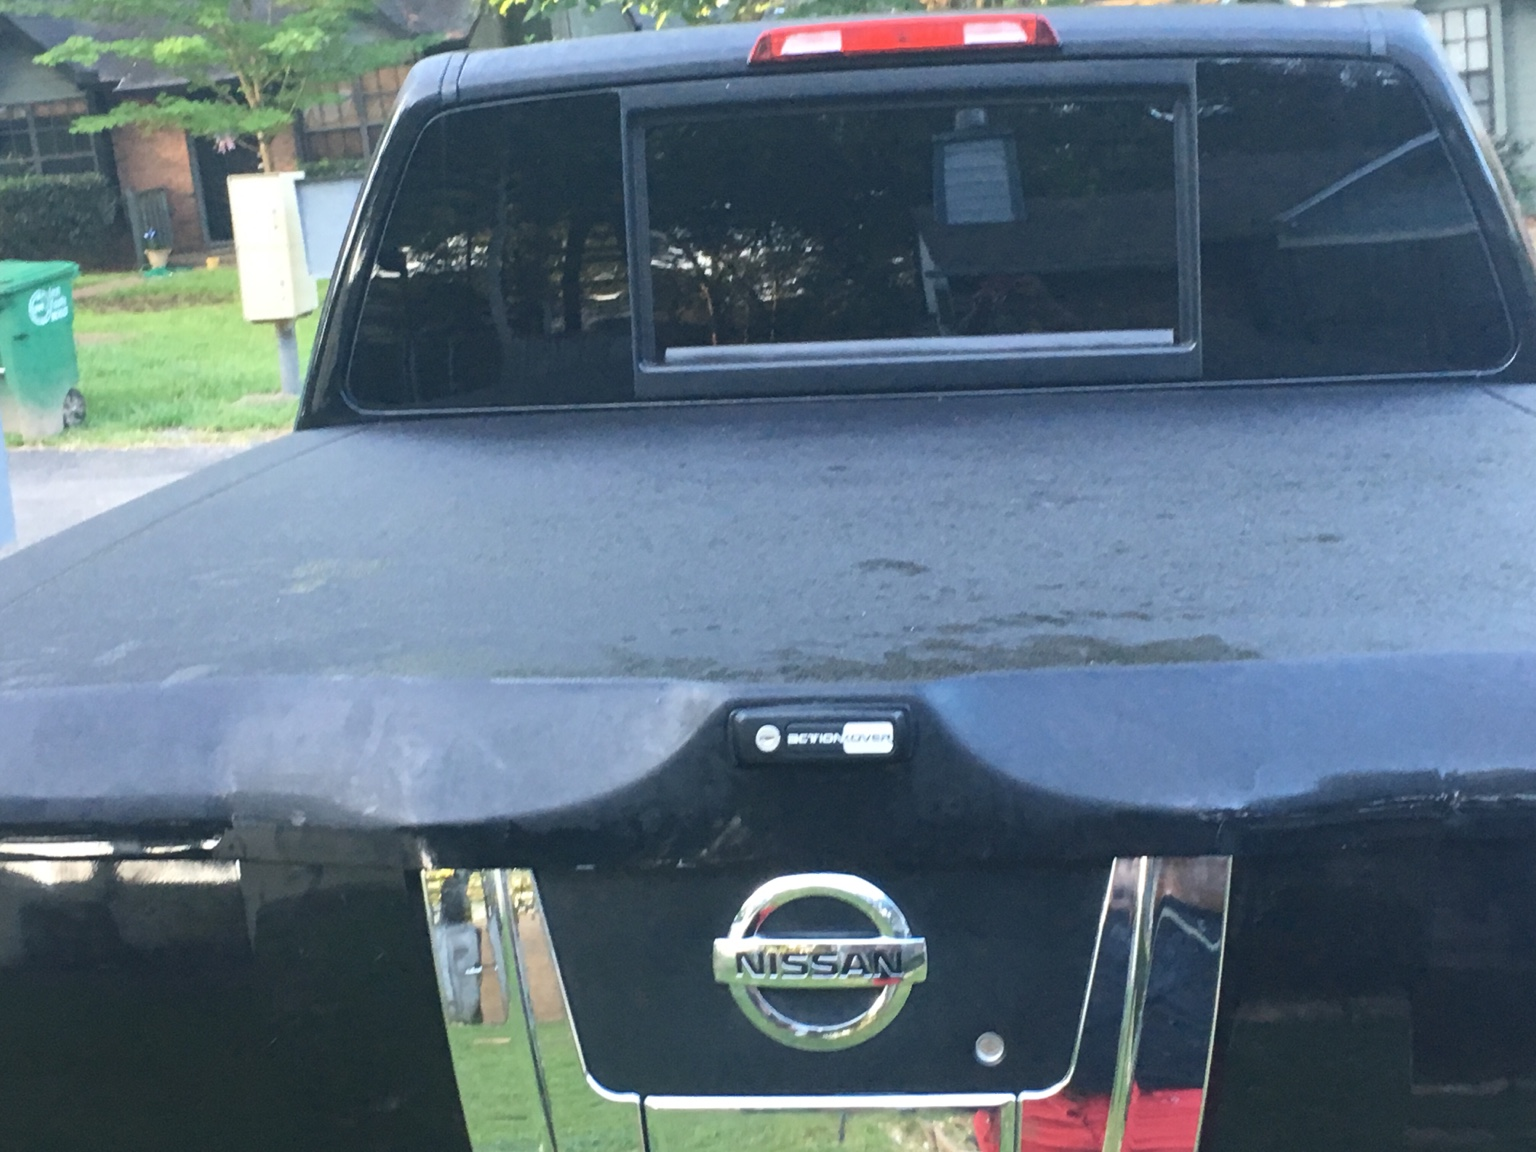 Used Honda Civic Si >> ActionKover tonneau cover - Nissan Titan Forum